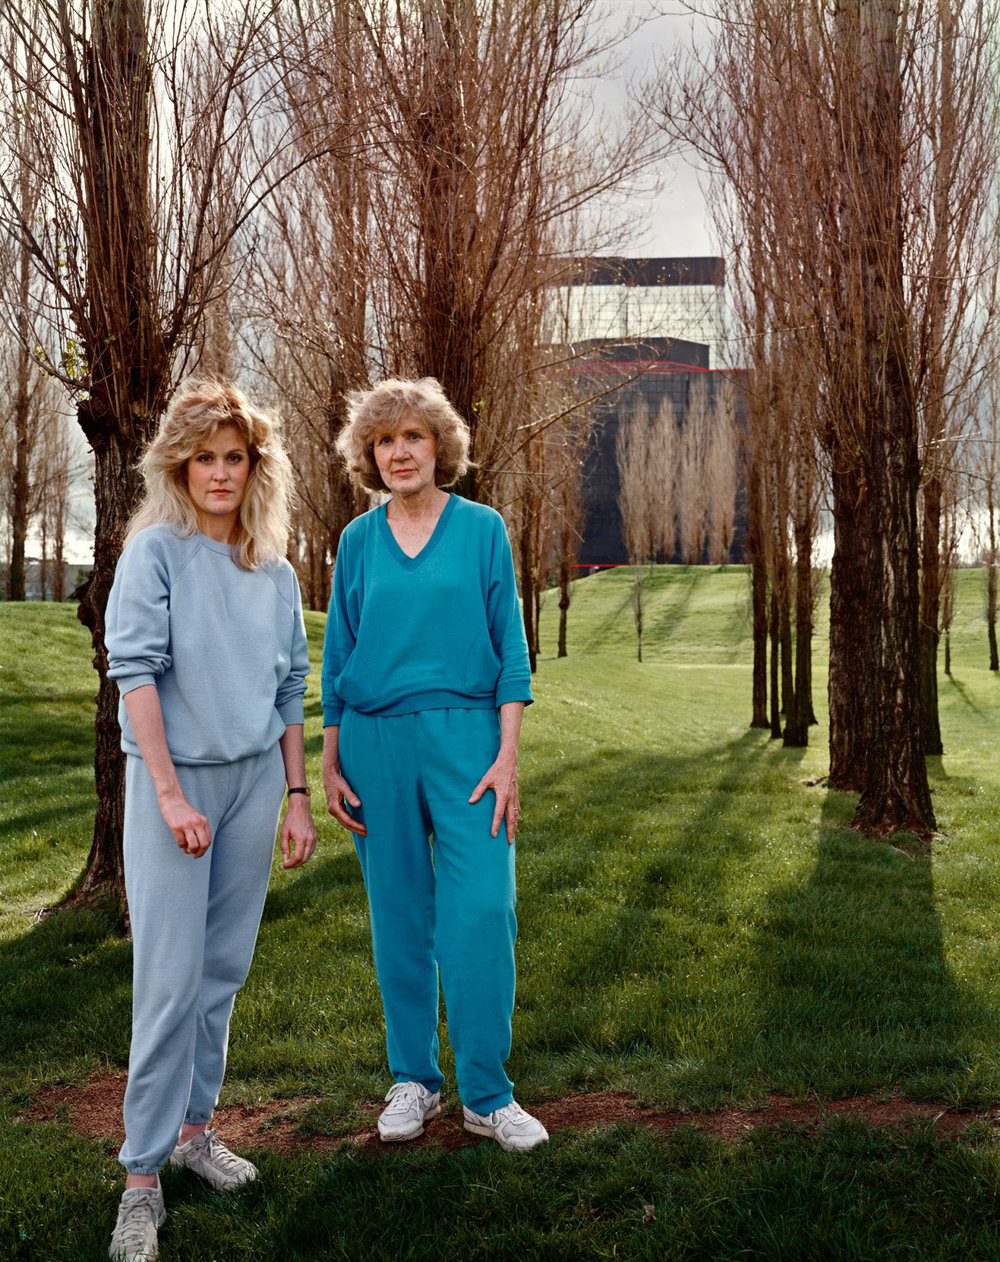 A Mother And Daughter On Their Daily Walk Near The Warner Center In The San Fernando Valley, California, March 1988